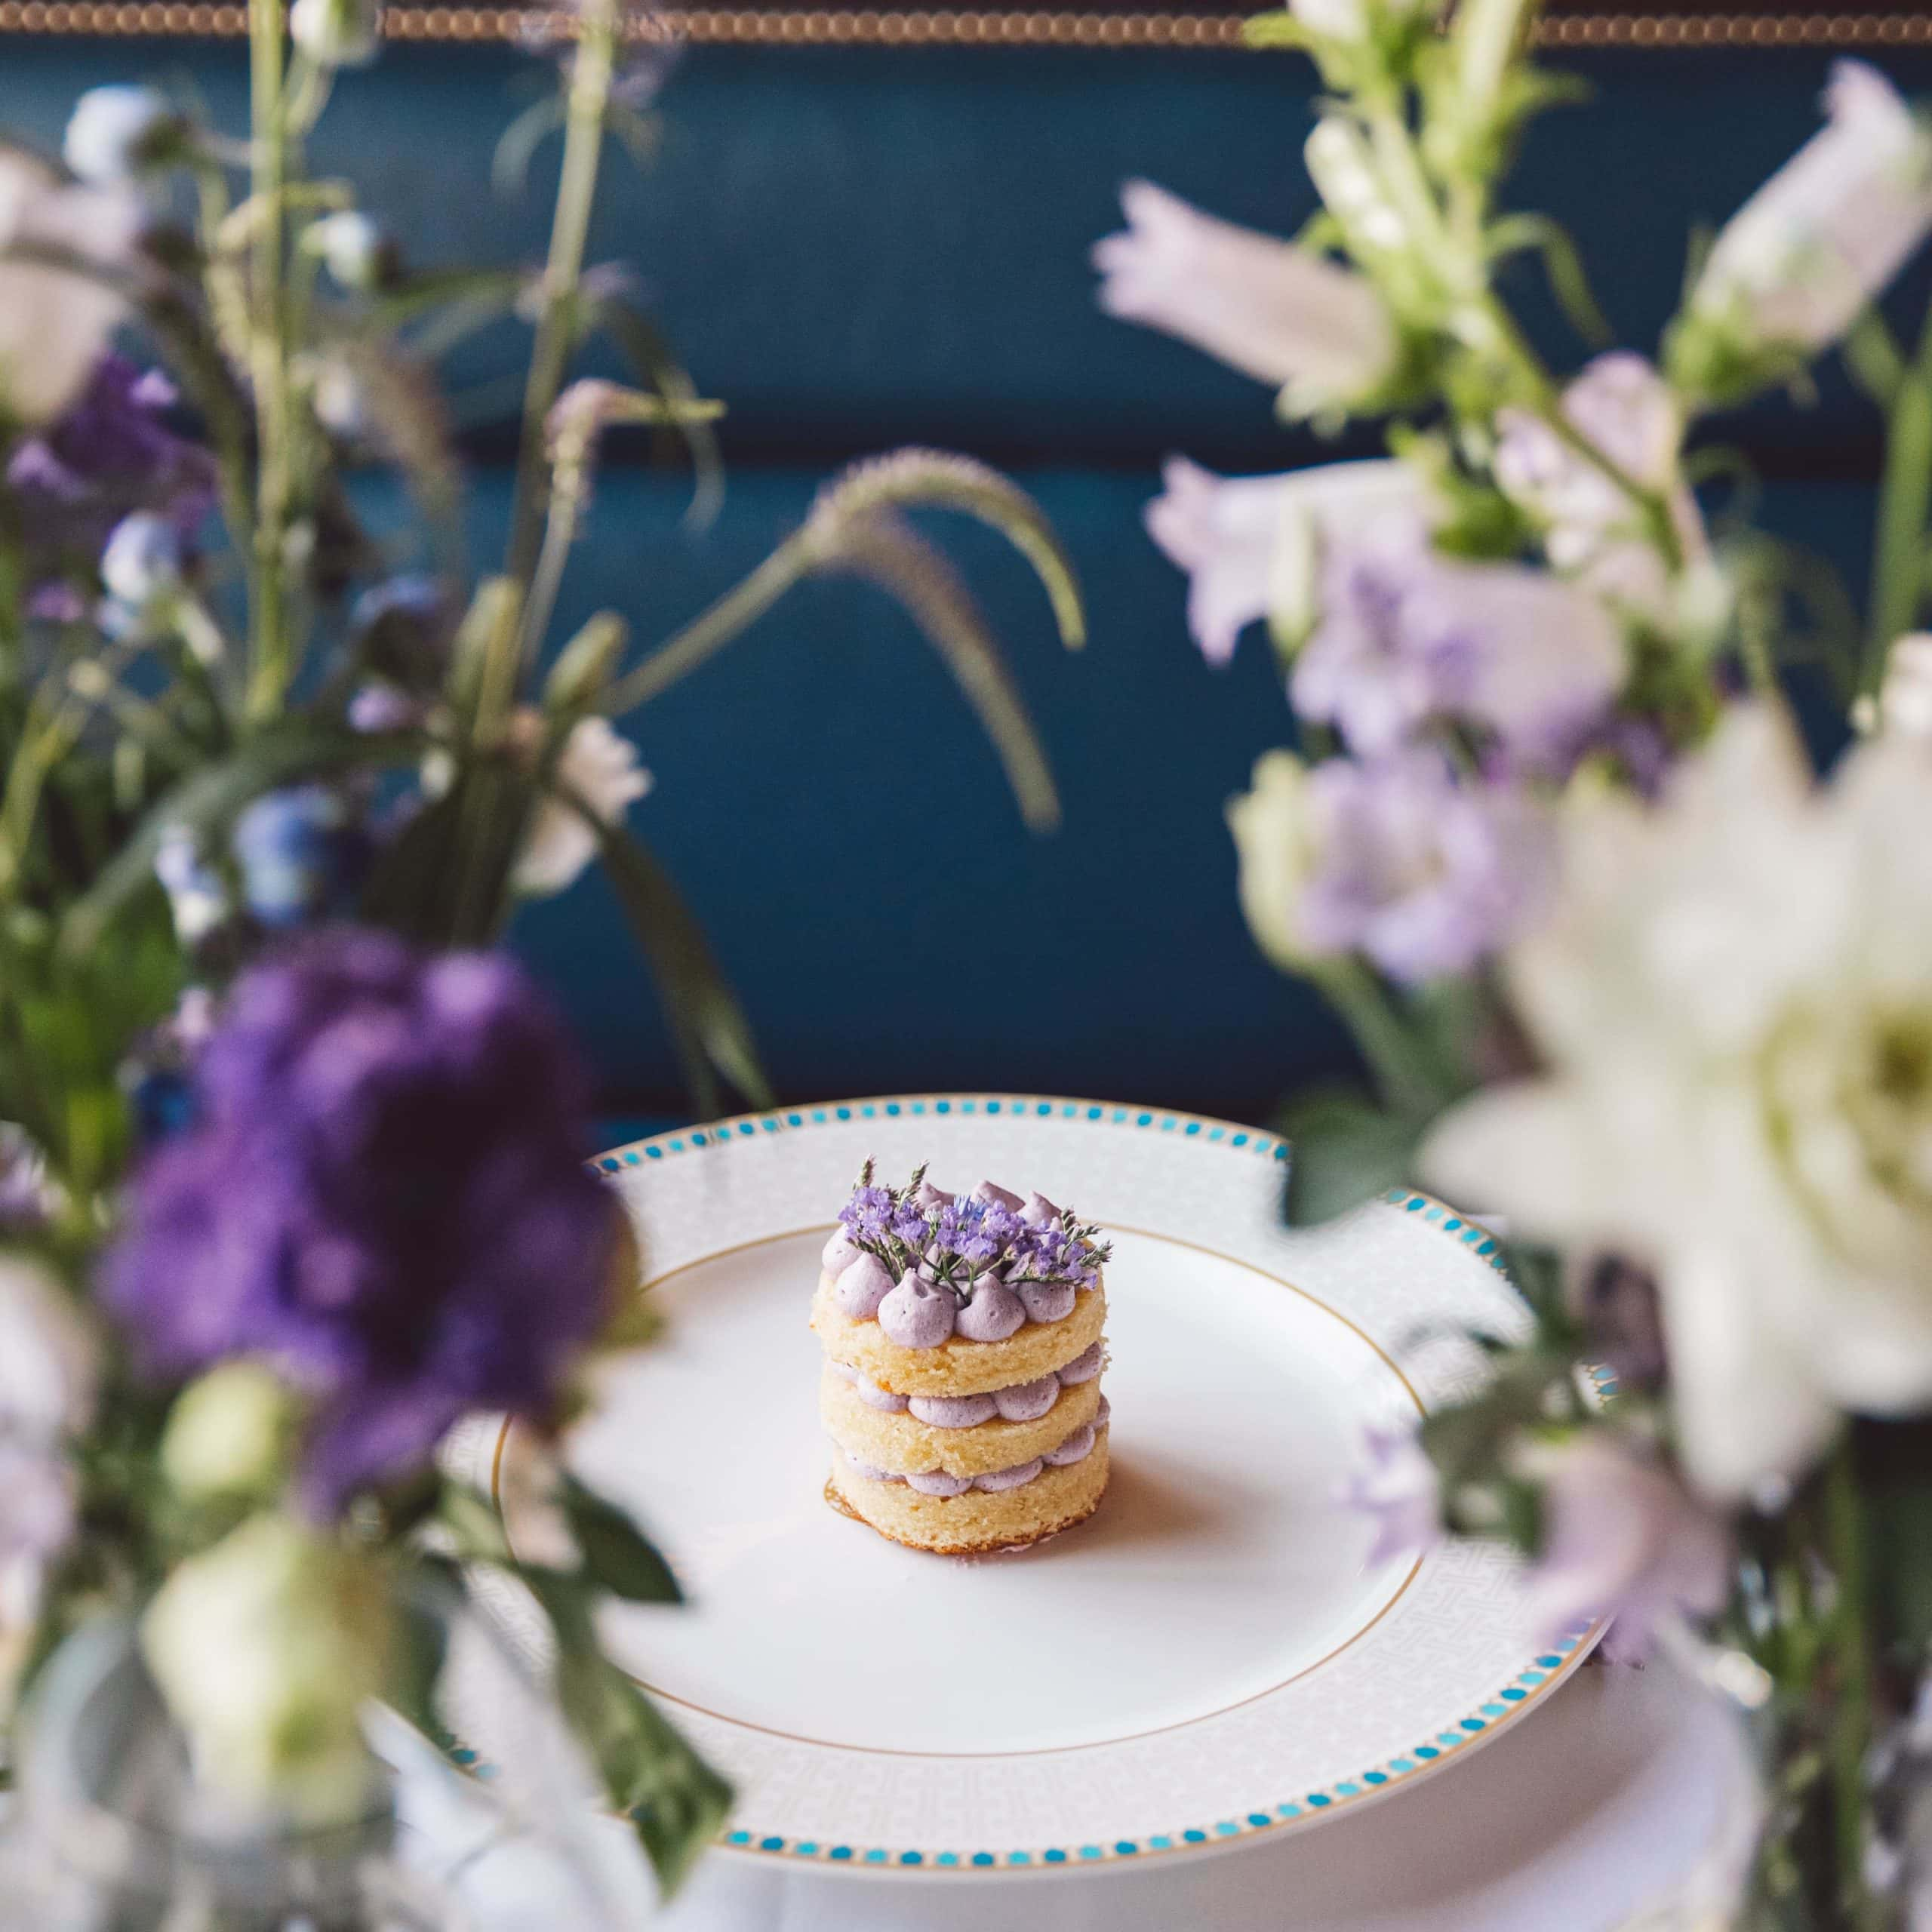 Purple whipped cream cake on a plate and a bridal bouquet